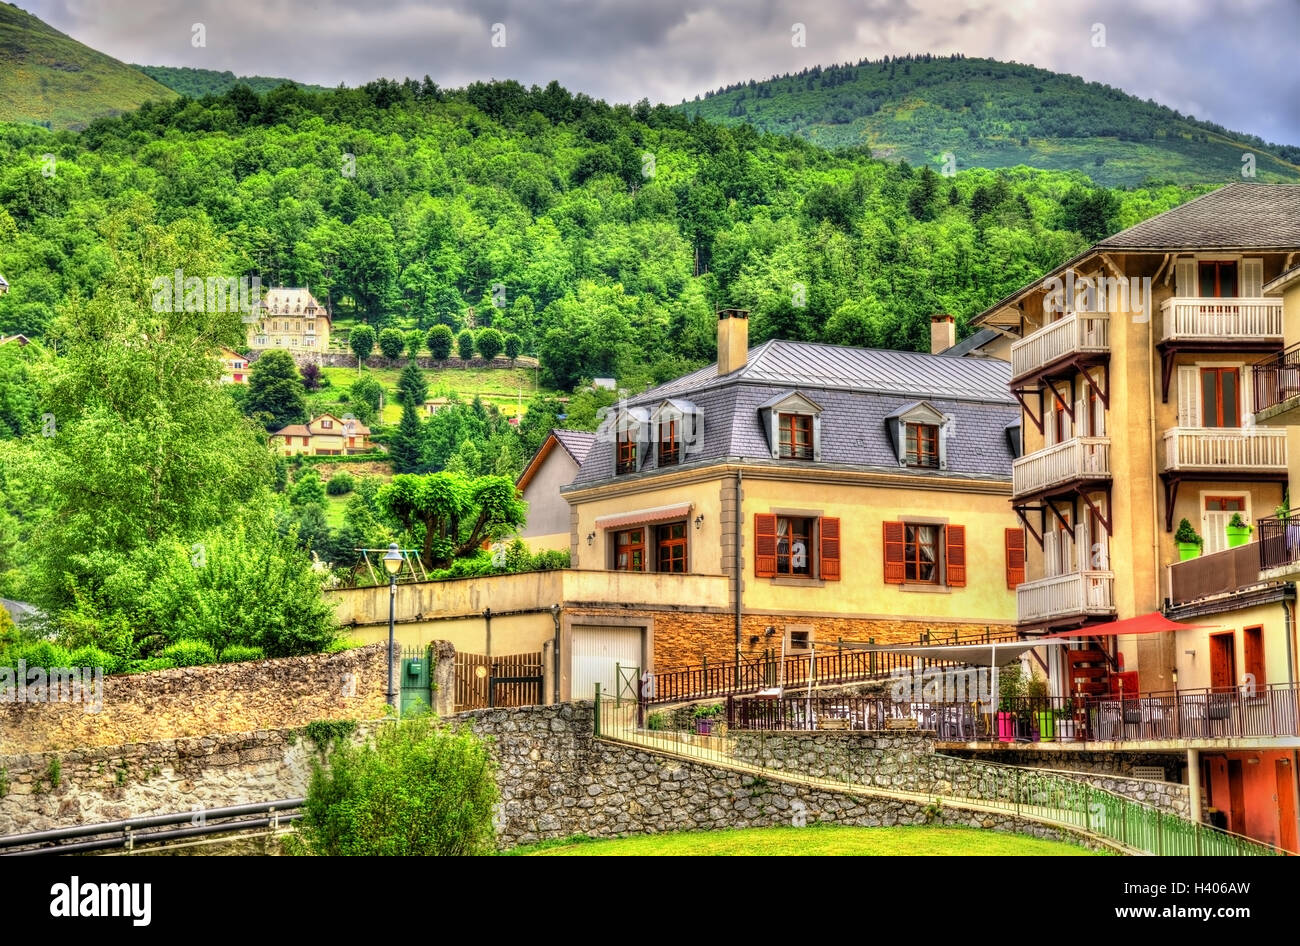 View of Ax-les-Thermes town - France, Midi-Pyrenees Stock Photo